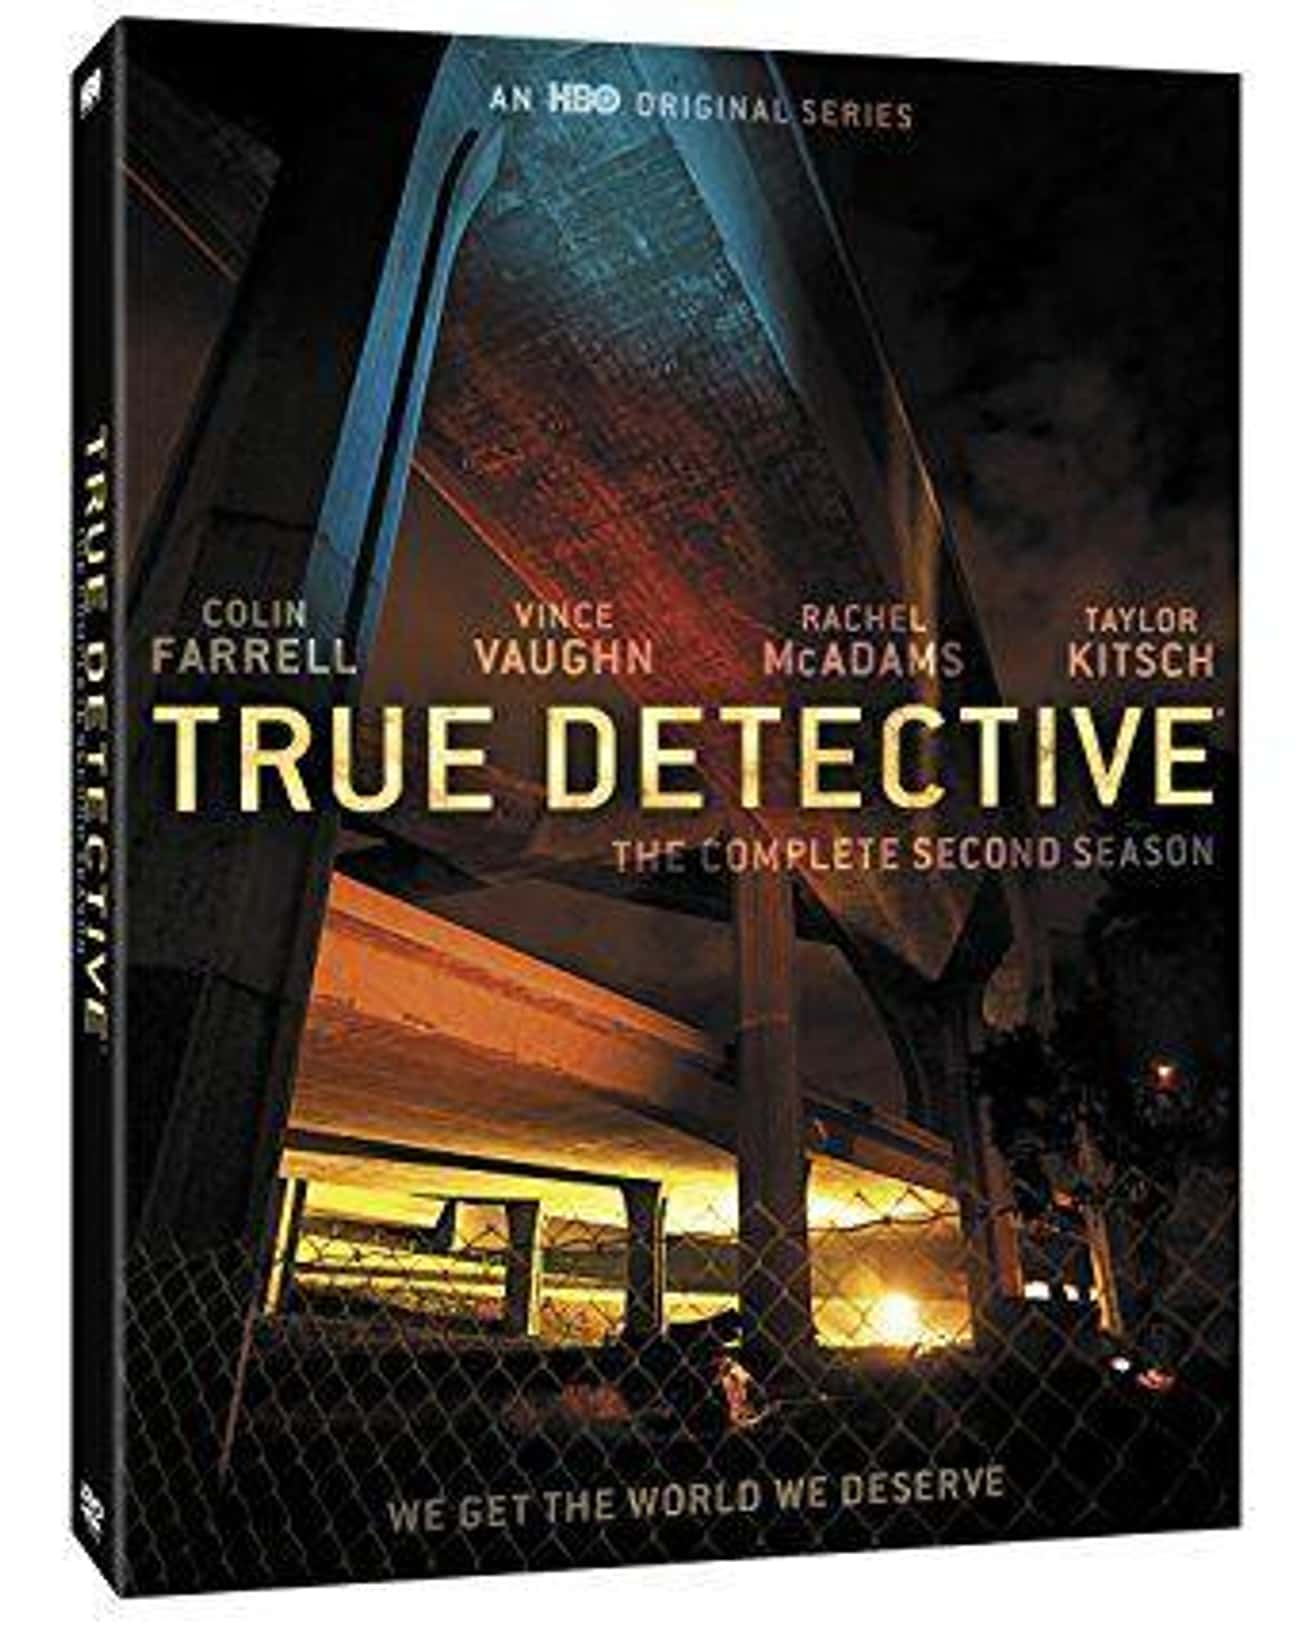 True Detective - Season 2 is listed (or ranked) 3 on the list The Best Seasons of True Detective